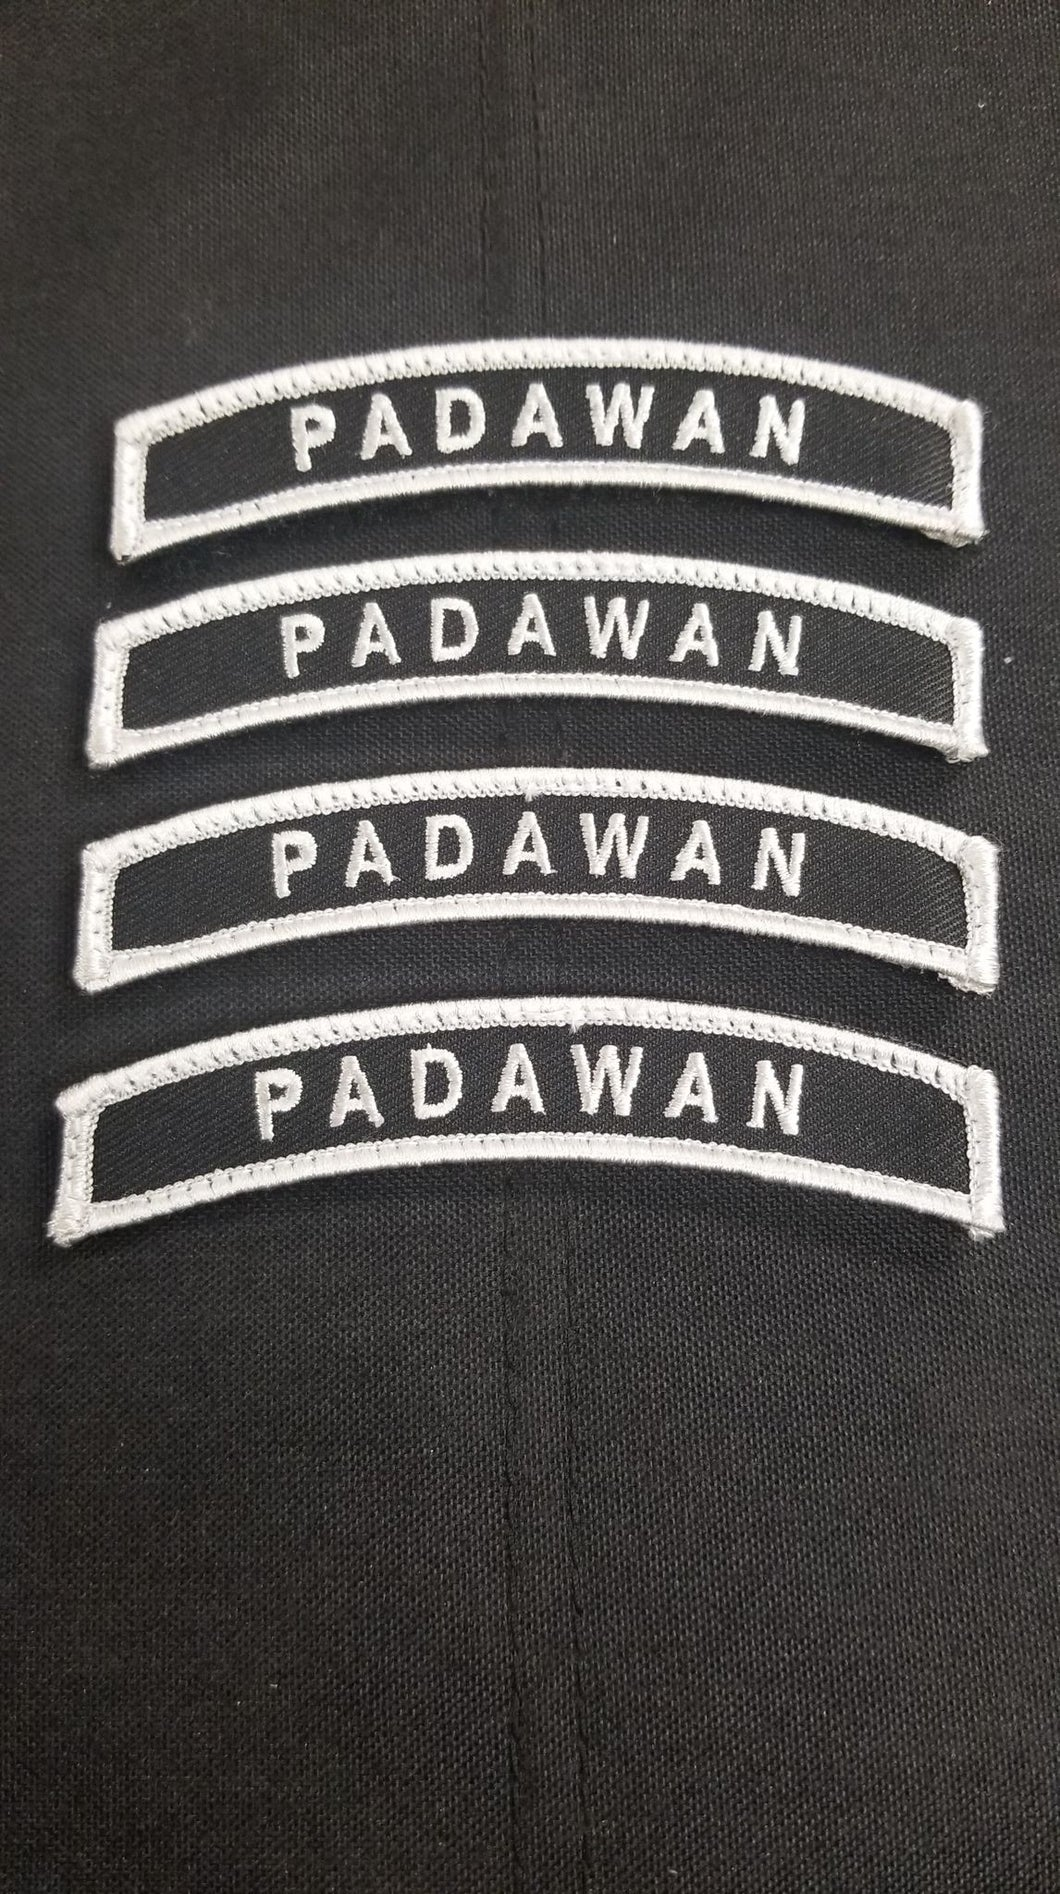 Padawan patch